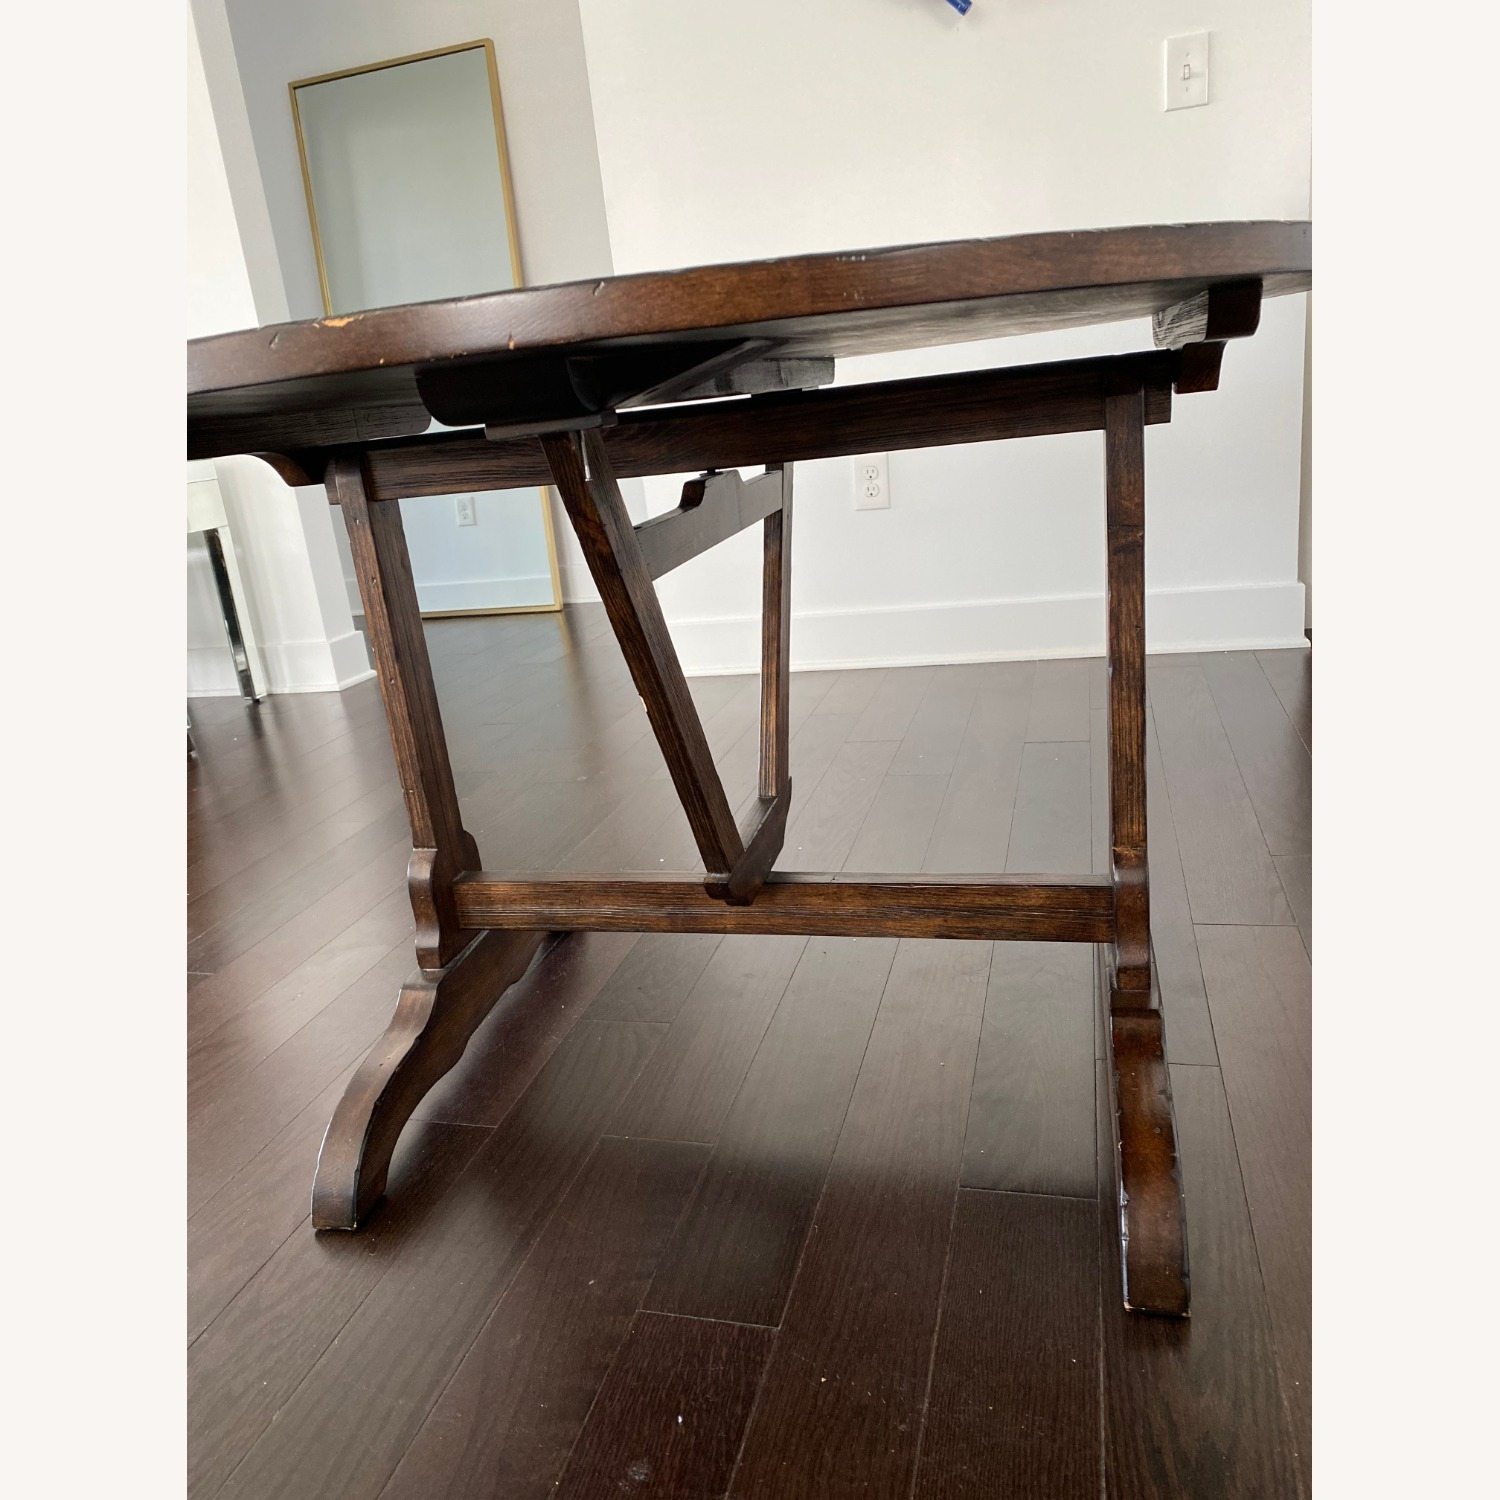 Pottery Barn Dining Table and Seagrass Chair Set - image-2